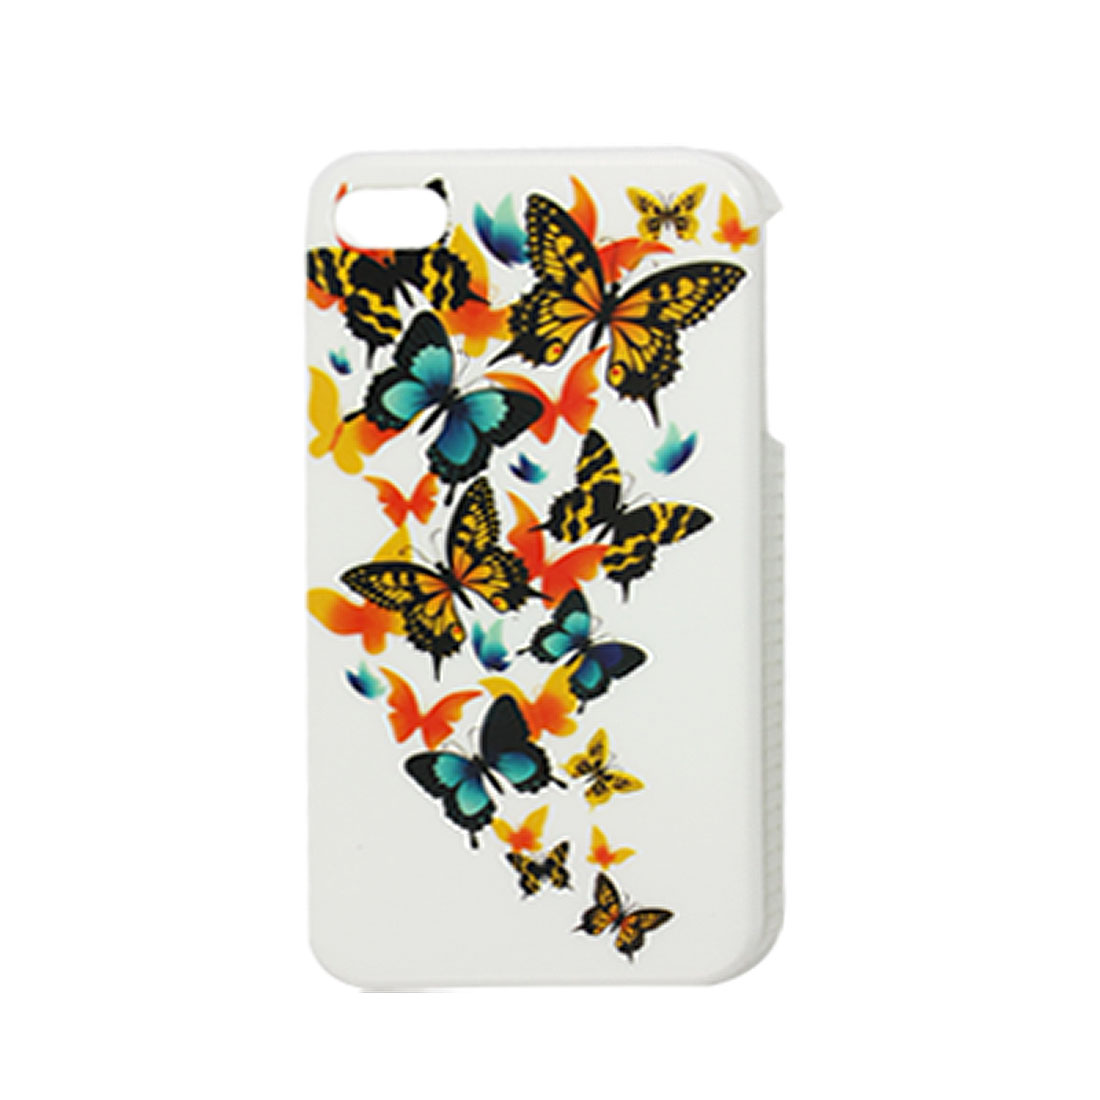 IMD Multi Butterfly Printed White Plastic Back Cover for iPhone 4 4G 4S